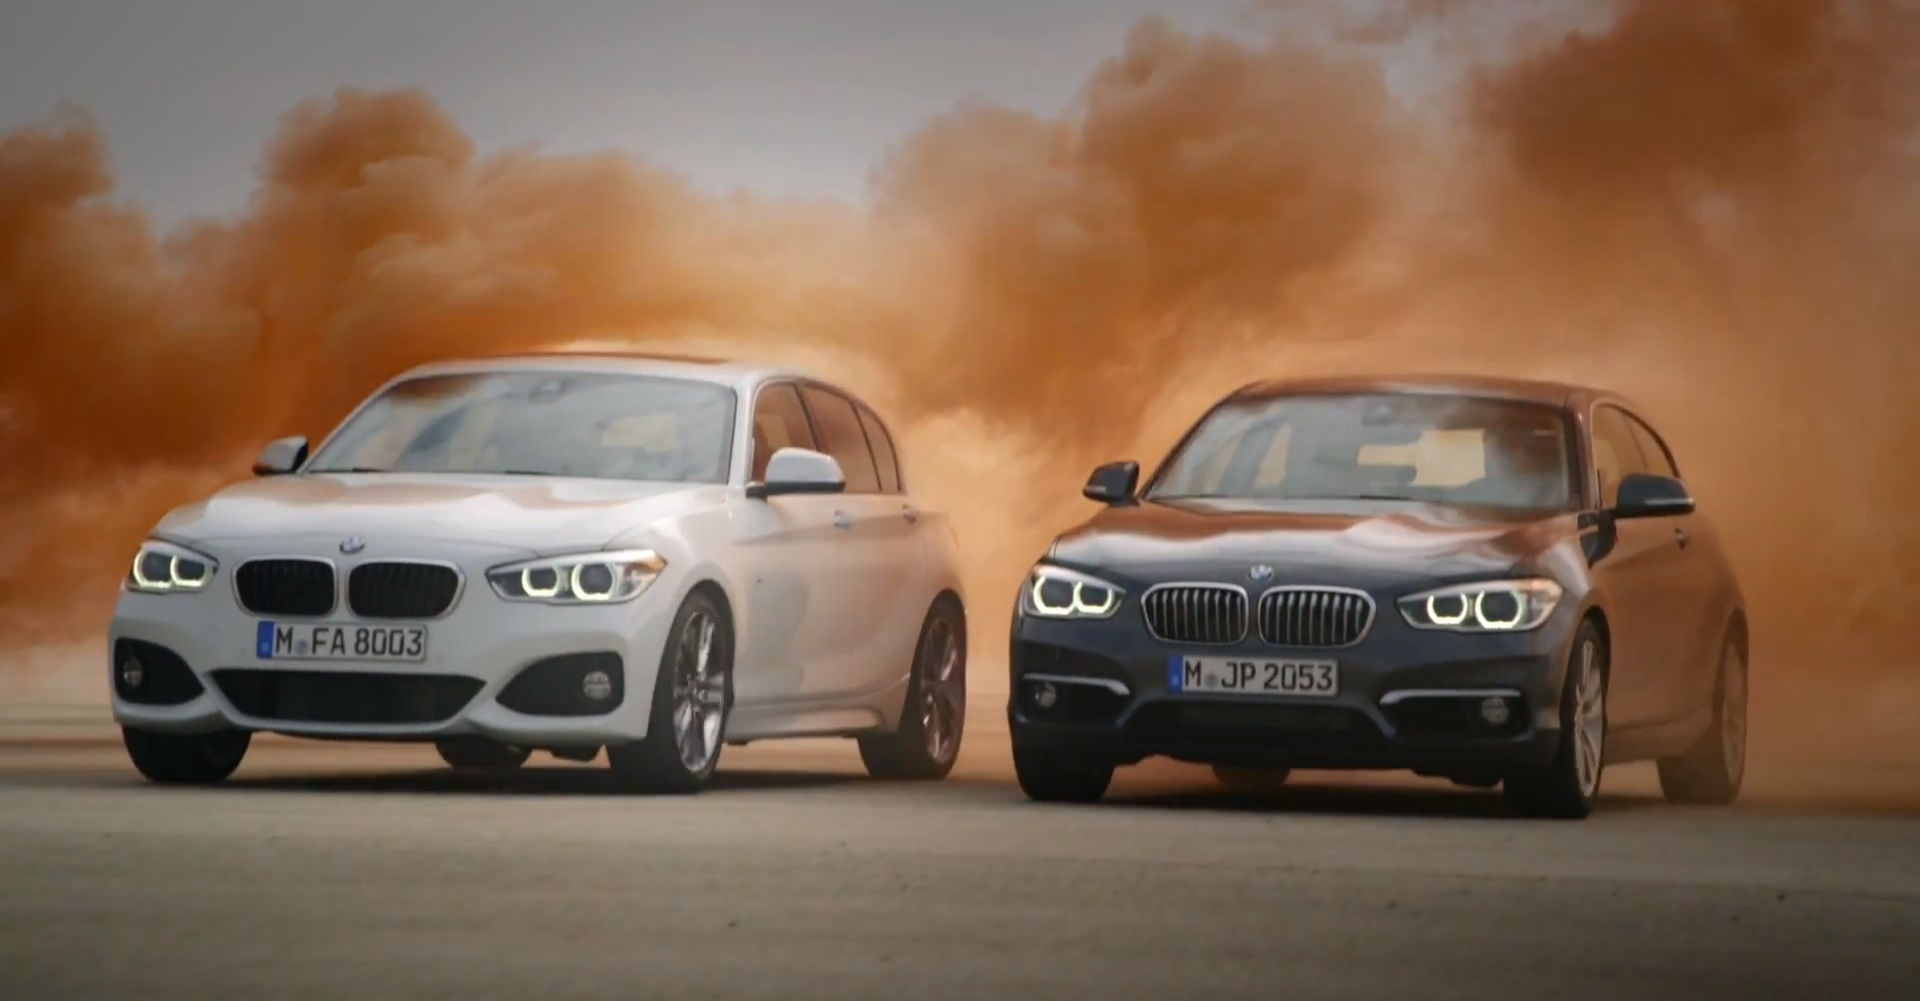 BMW 1 Series Facelift Launch Film Shows an Active Lifestyle for